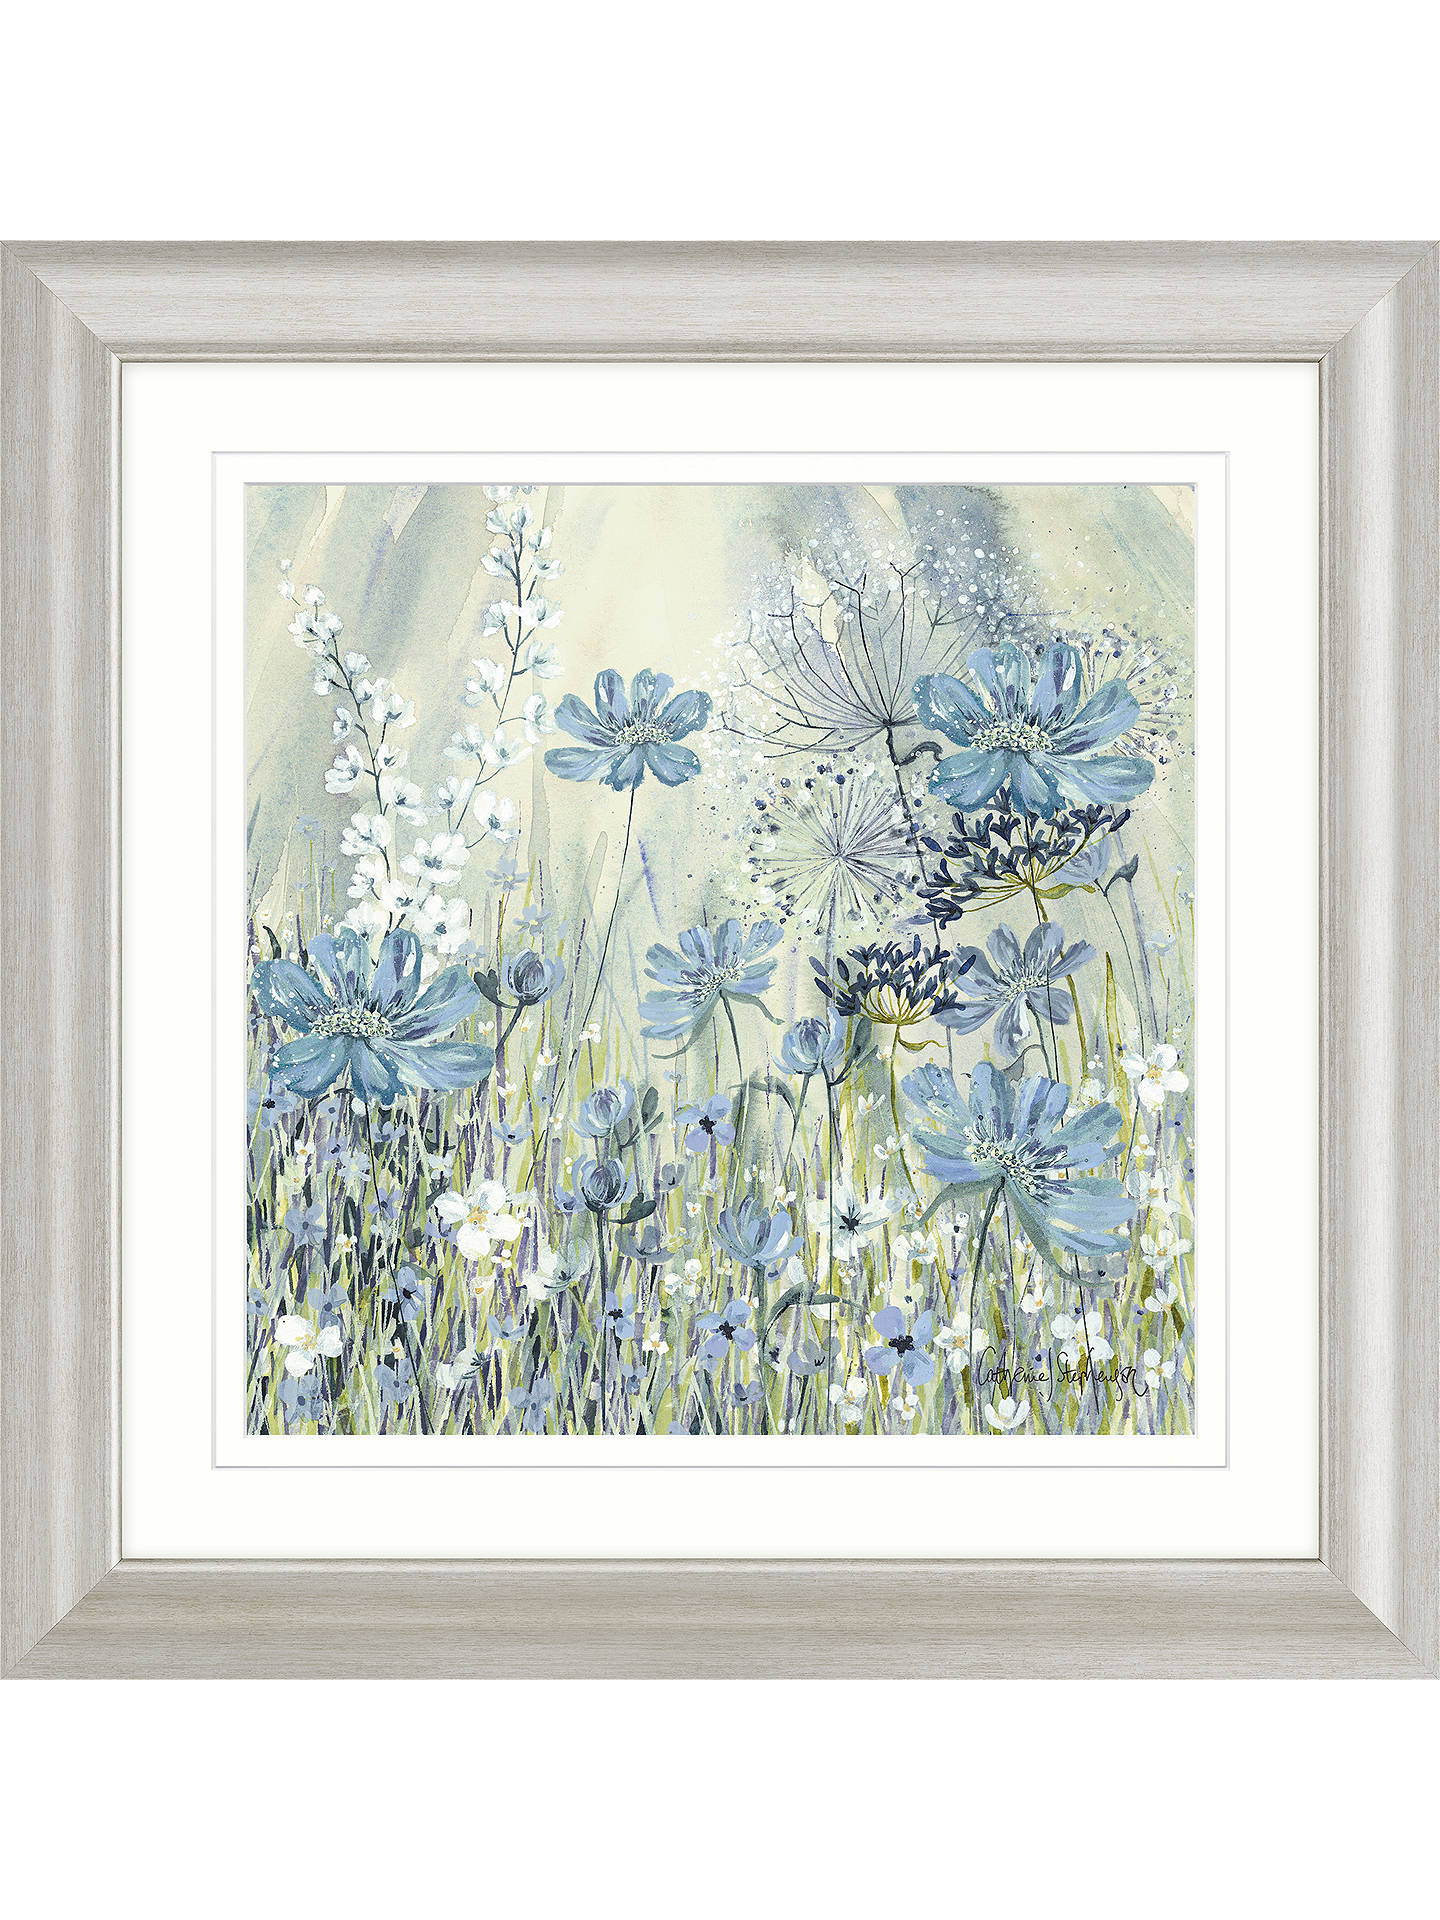 Buy Catherine Stephenson - Powder Blue Flowers I Framed Print & Mount, 68.5 x 68.5cm Online at johnlewis.com